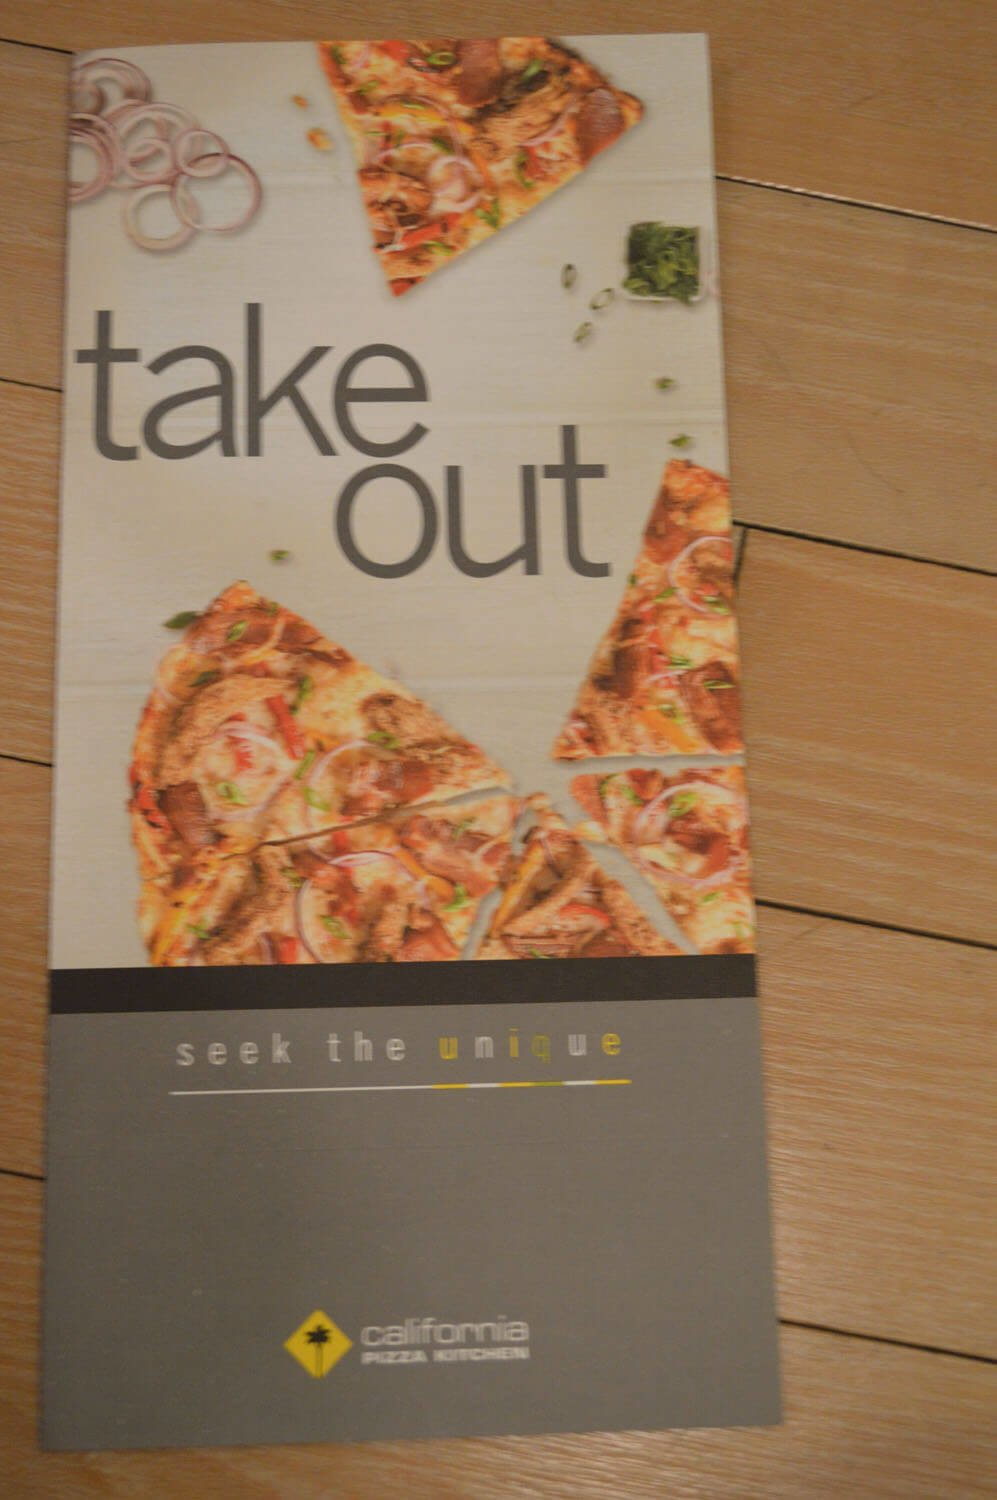 California Pizza Kitchen Menu – 1